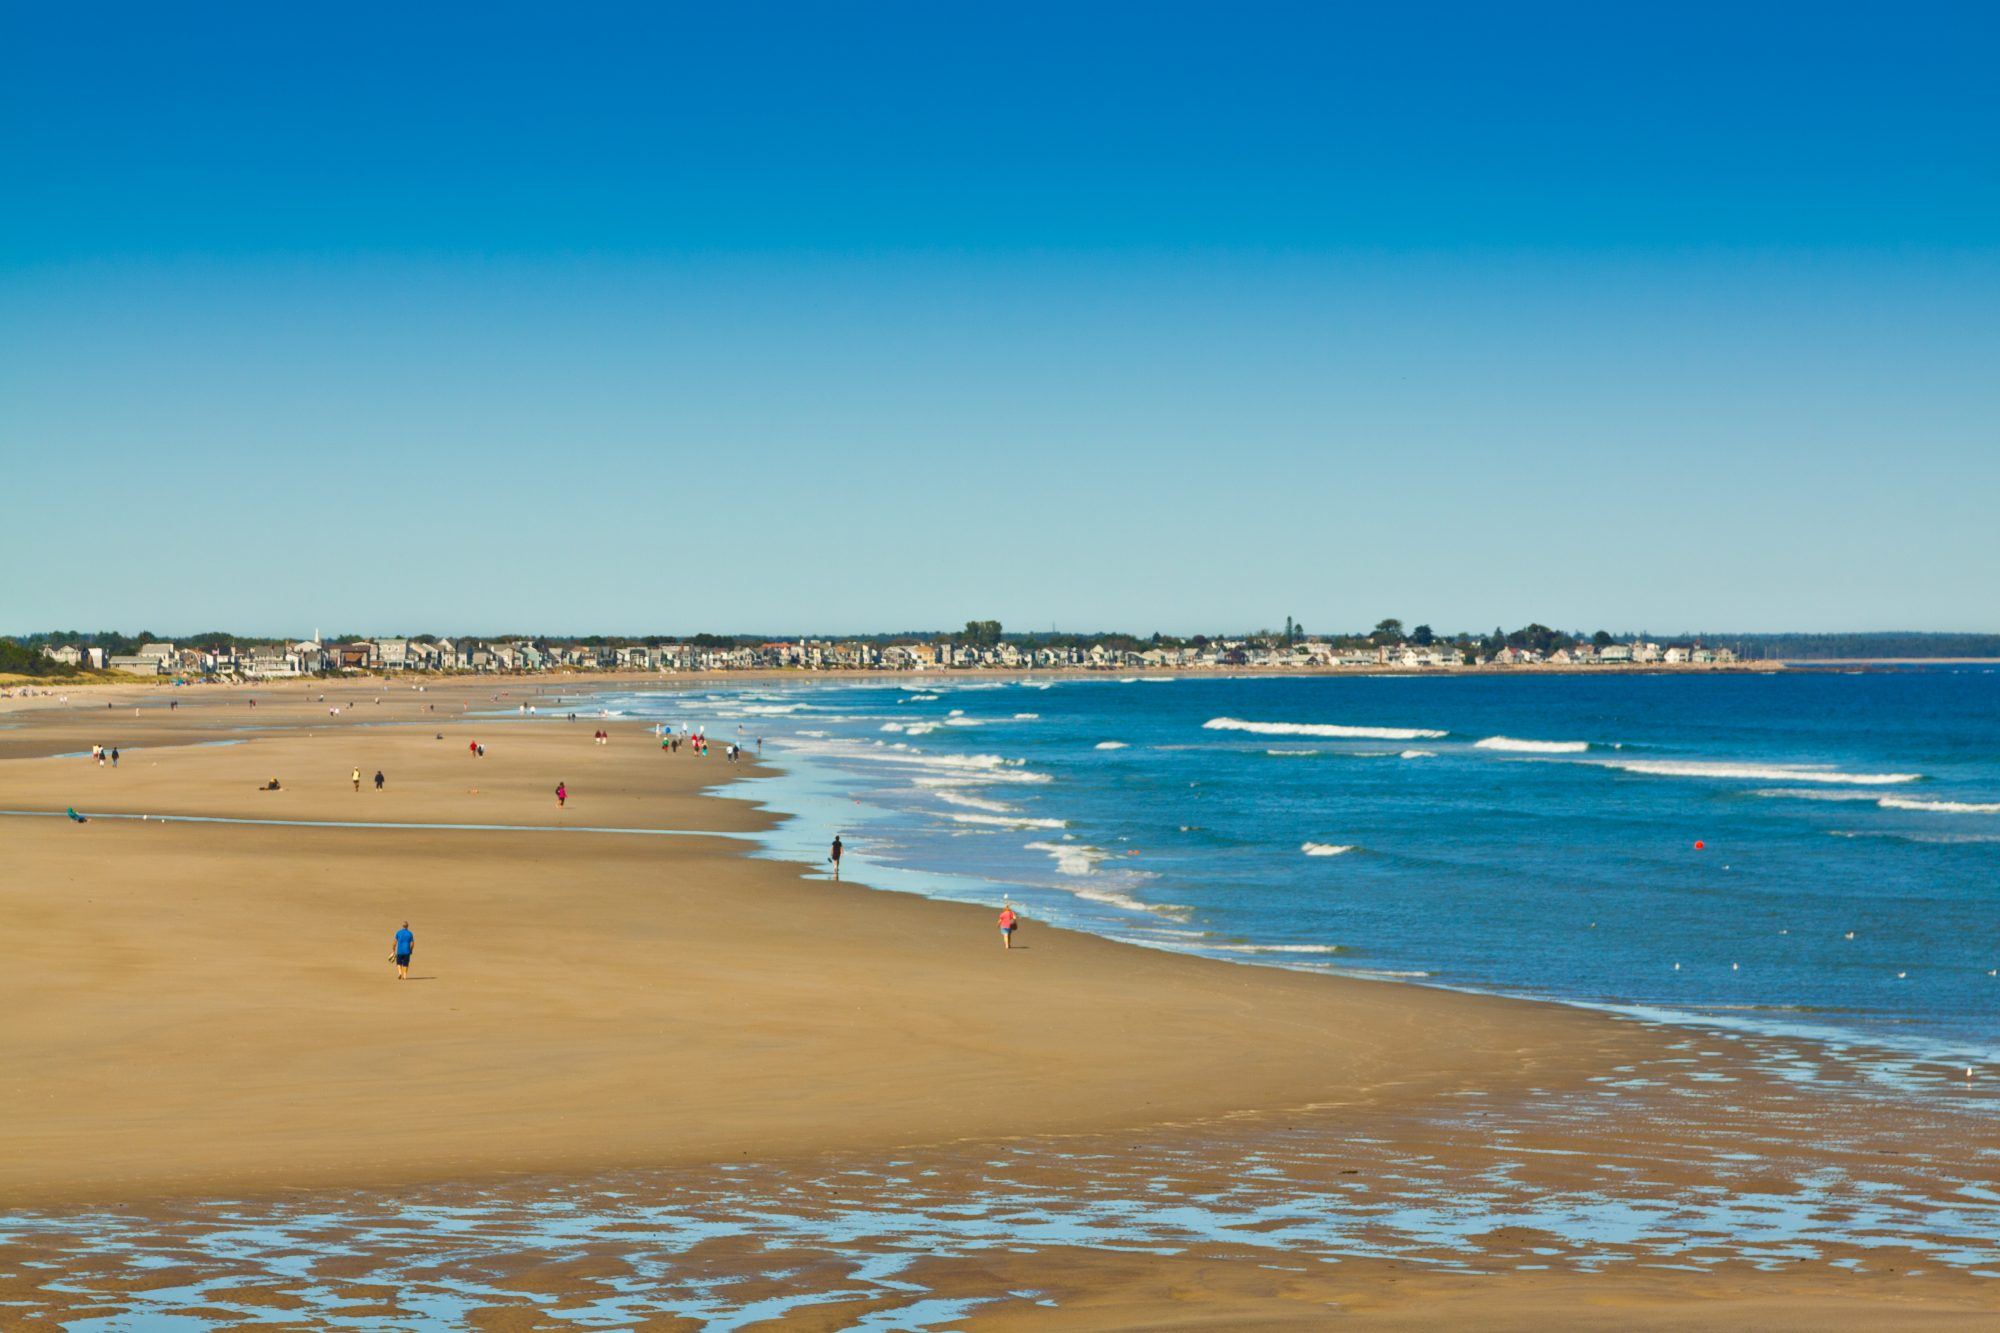 HDR image (photorealistic) of the Ogunquit Beach, Maine.